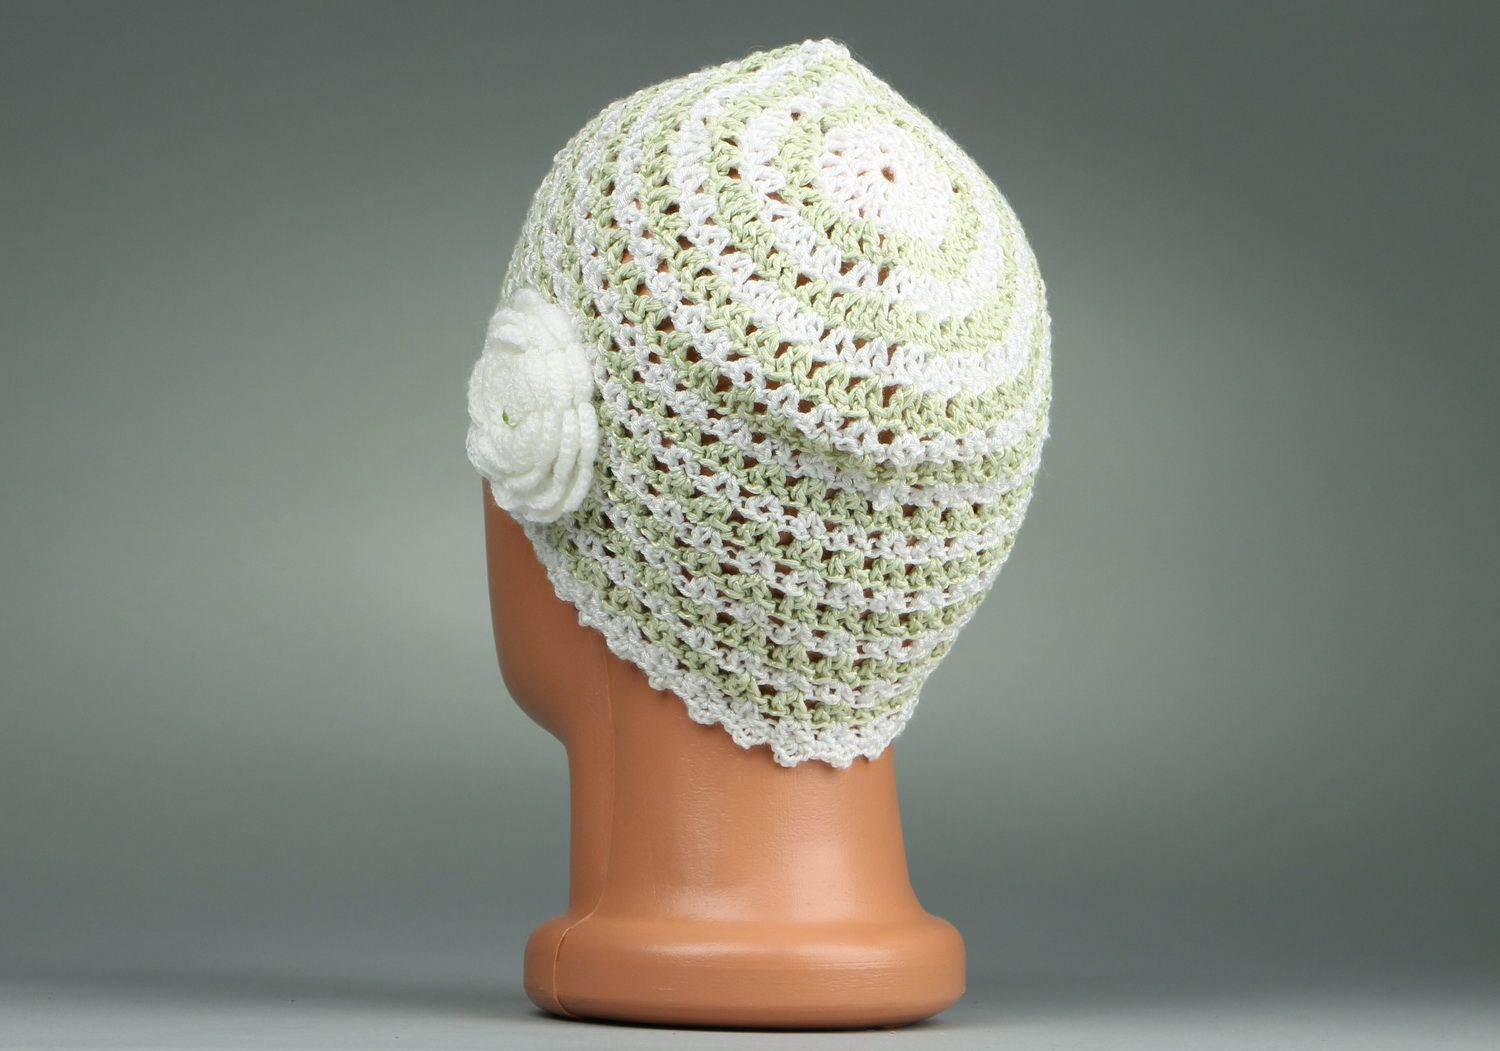 headwear Crocheted hat - MADEheart.com